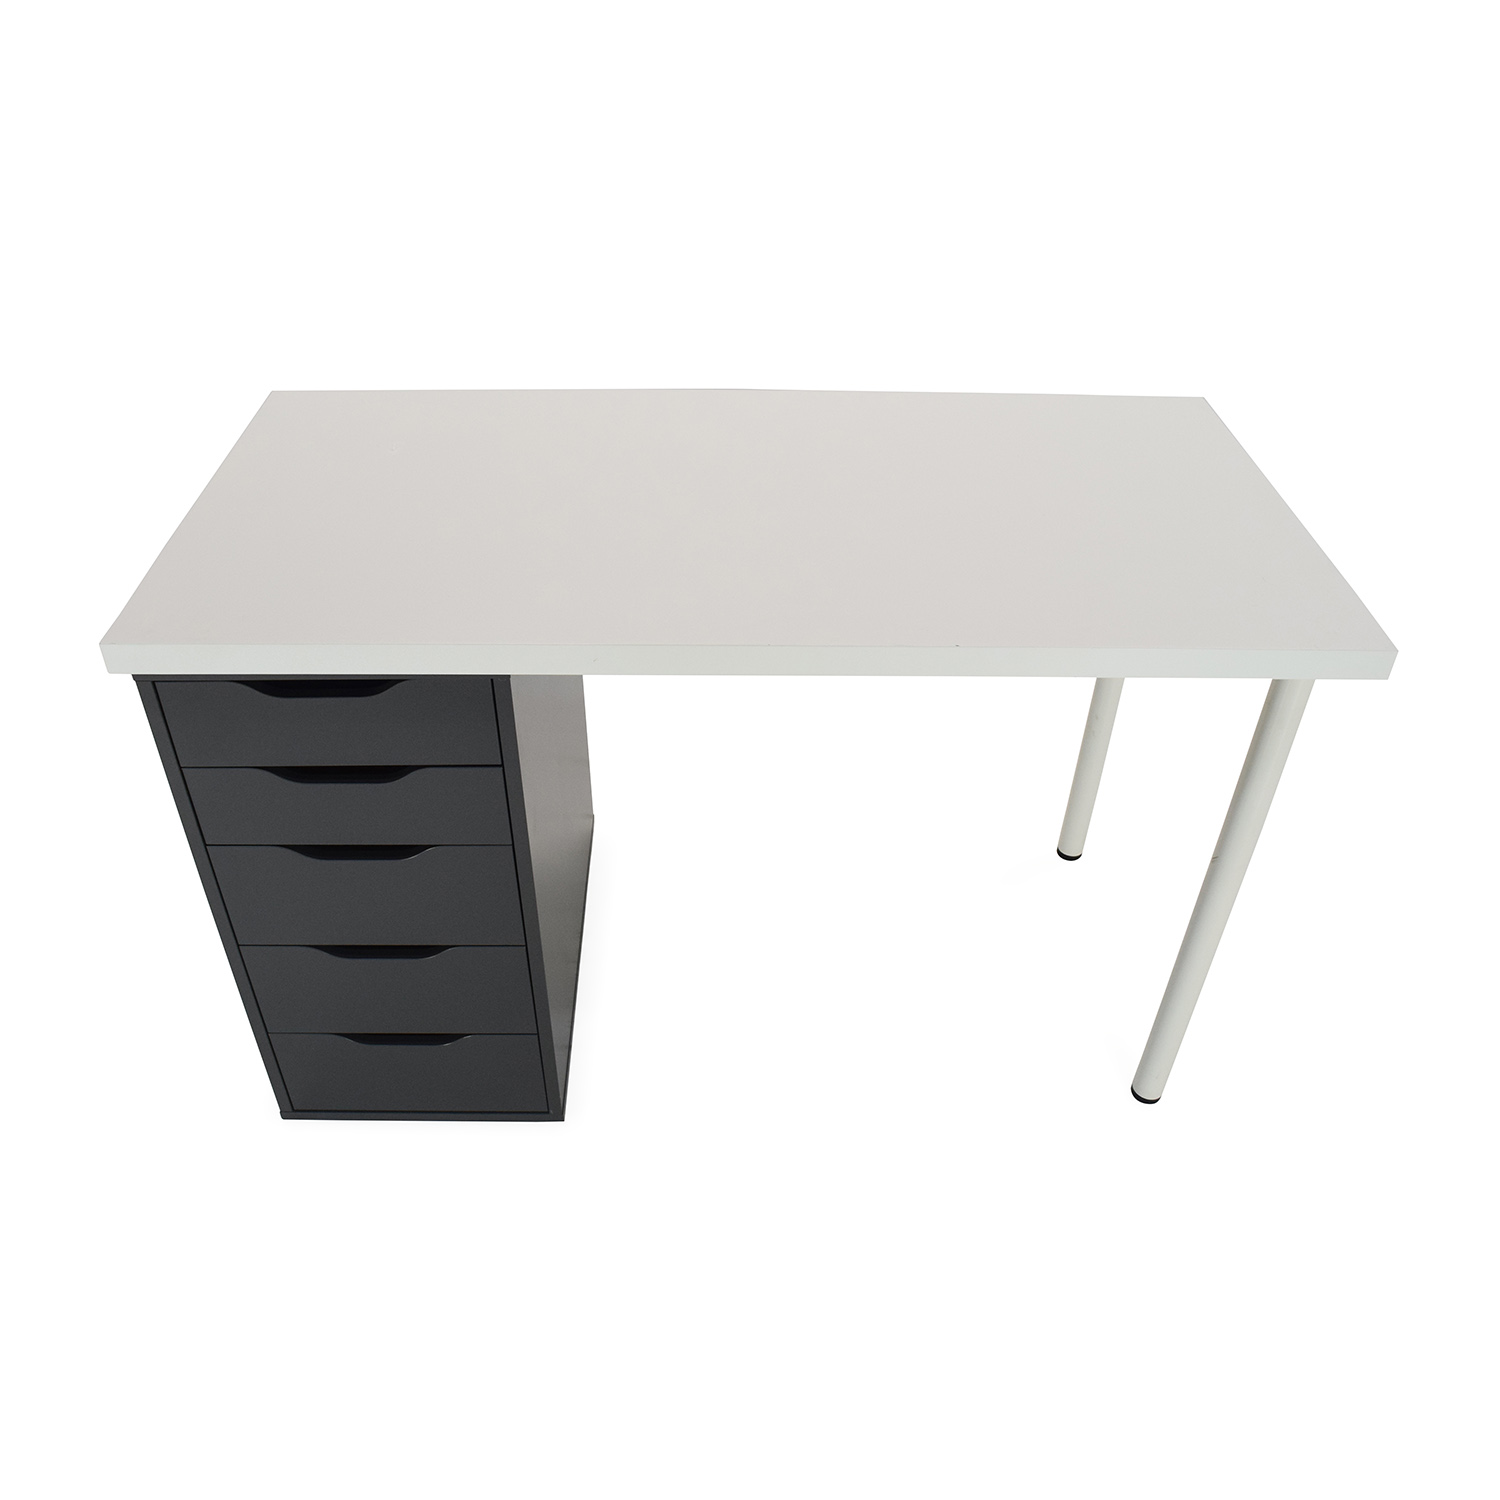 IKEA Study Table price